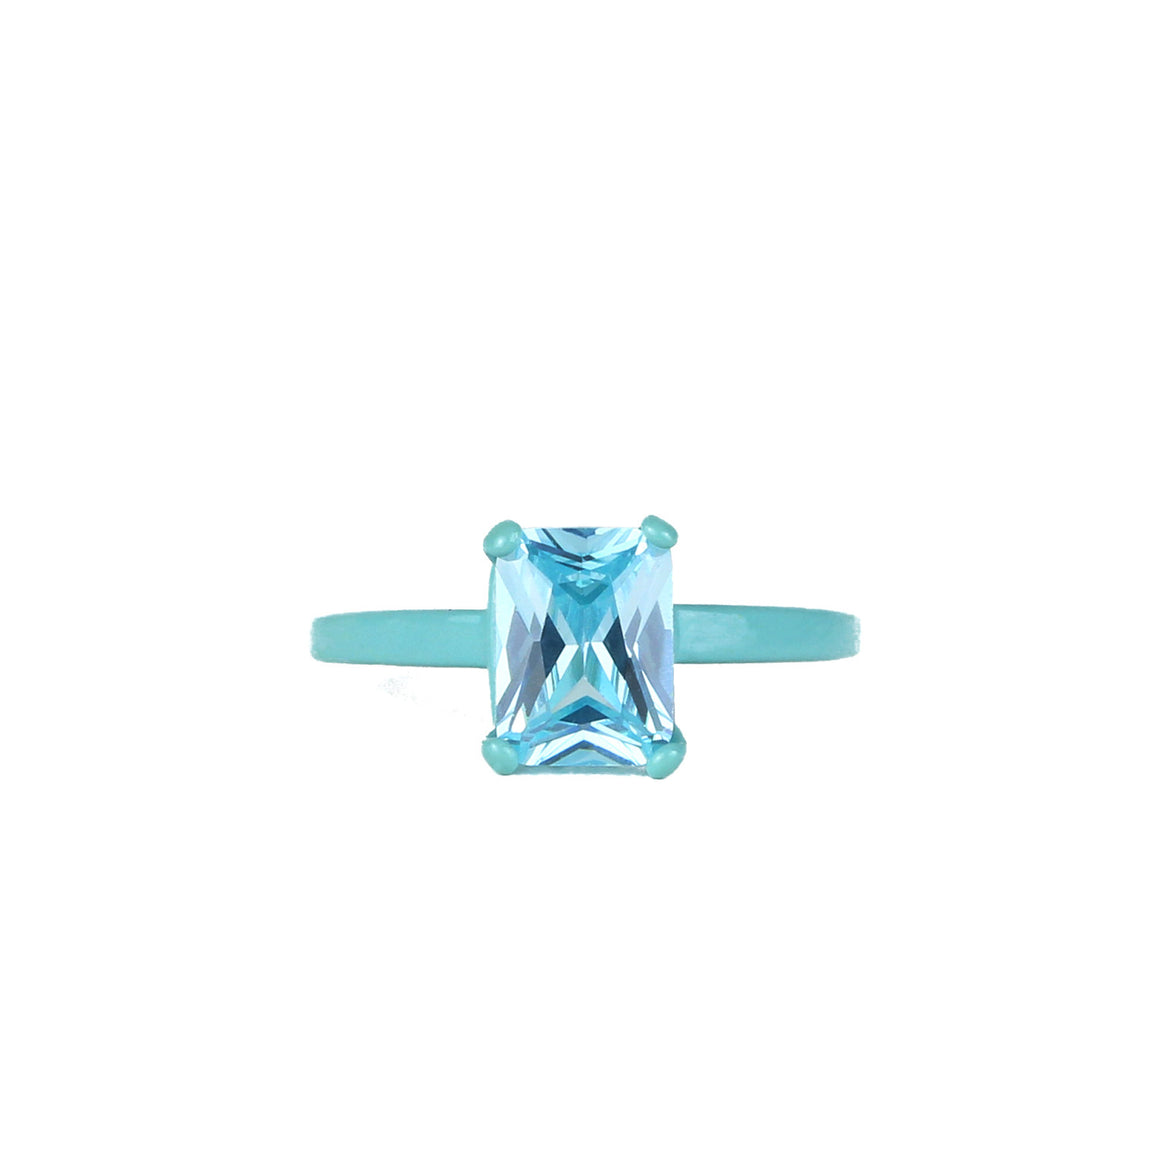 Lucky Charms Bling Ring - Aqua Octagon 8mm x 6mm - Powder Coated